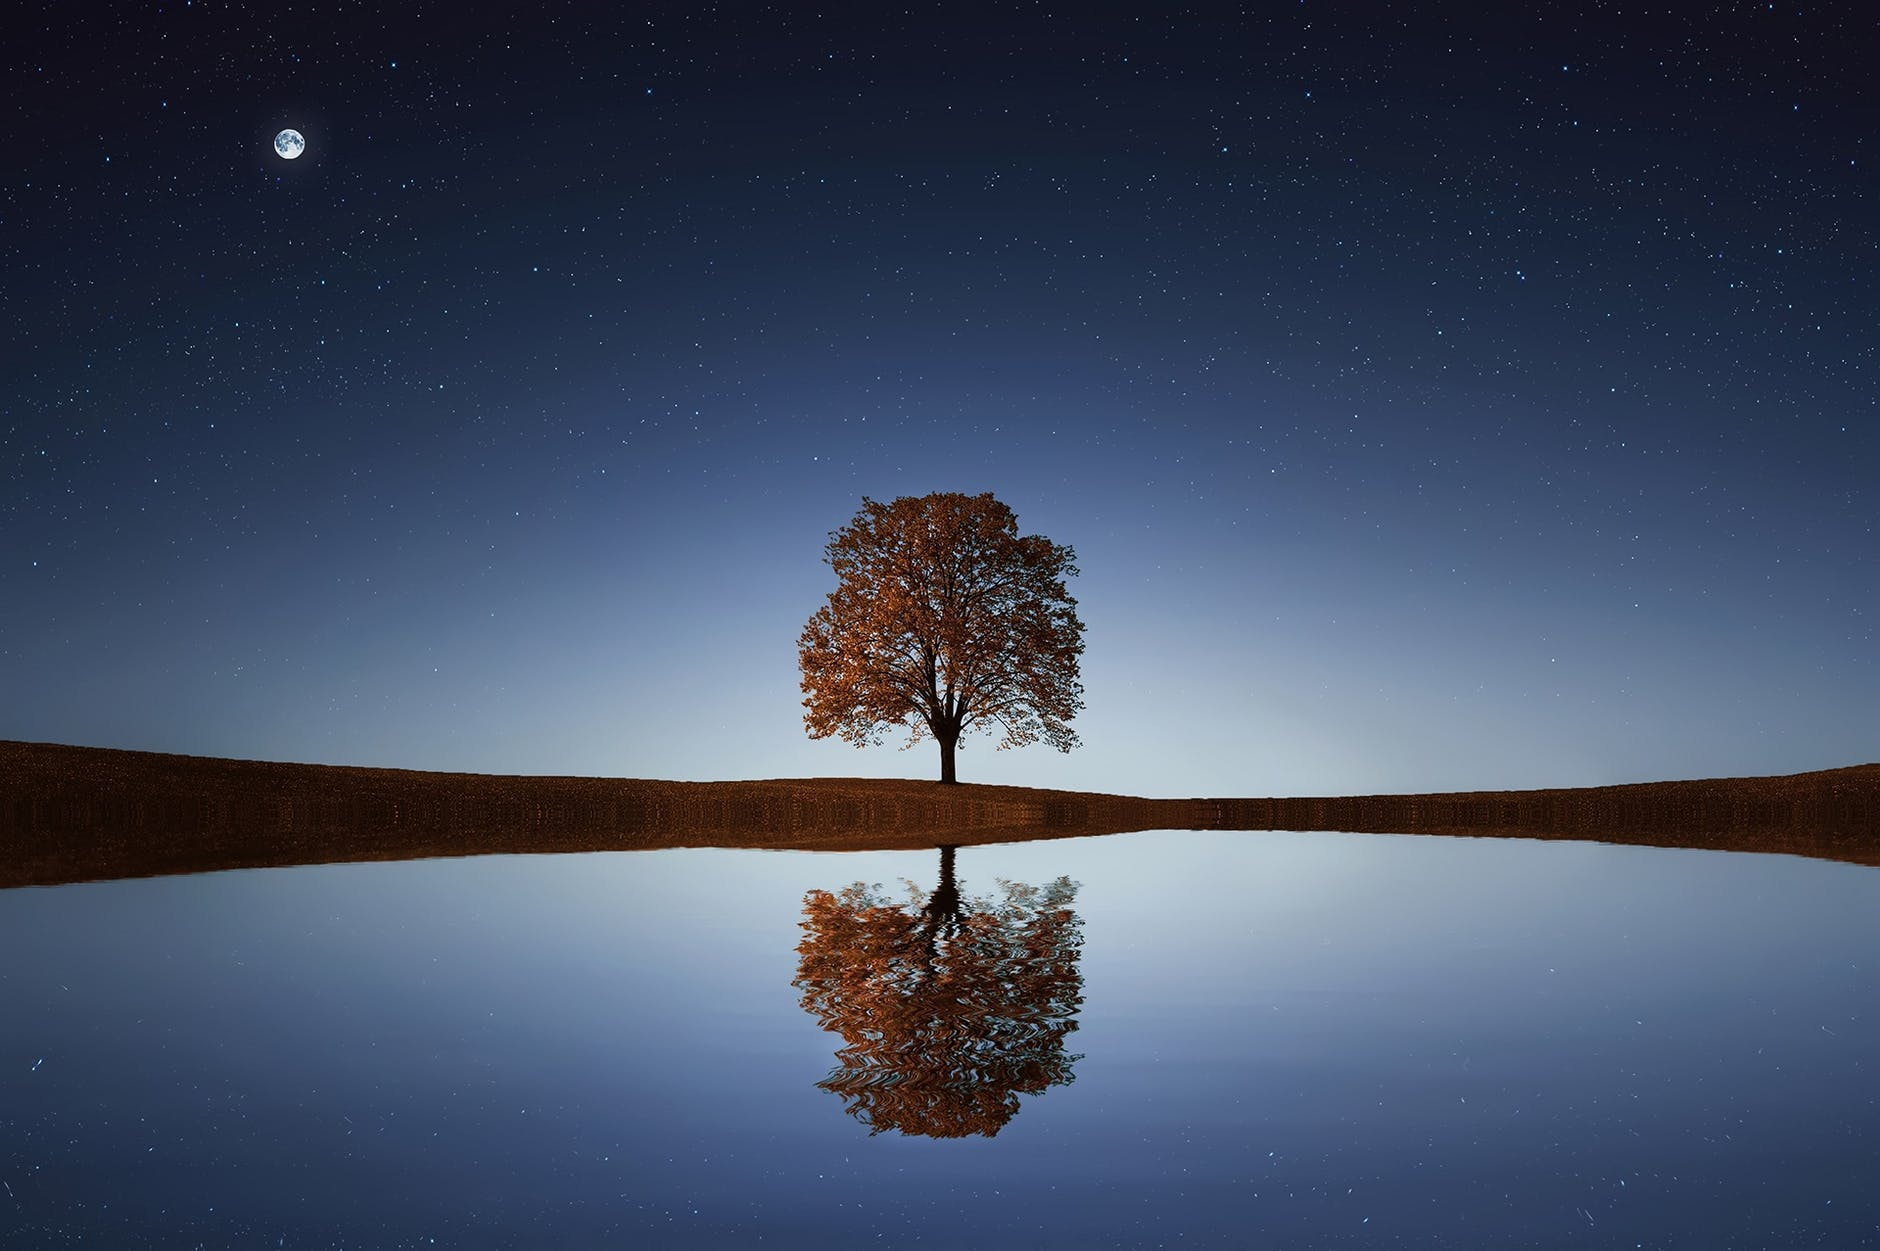 Lonely tree growing in the center of the horizon surrounded by stars. Everything is reflected on the water